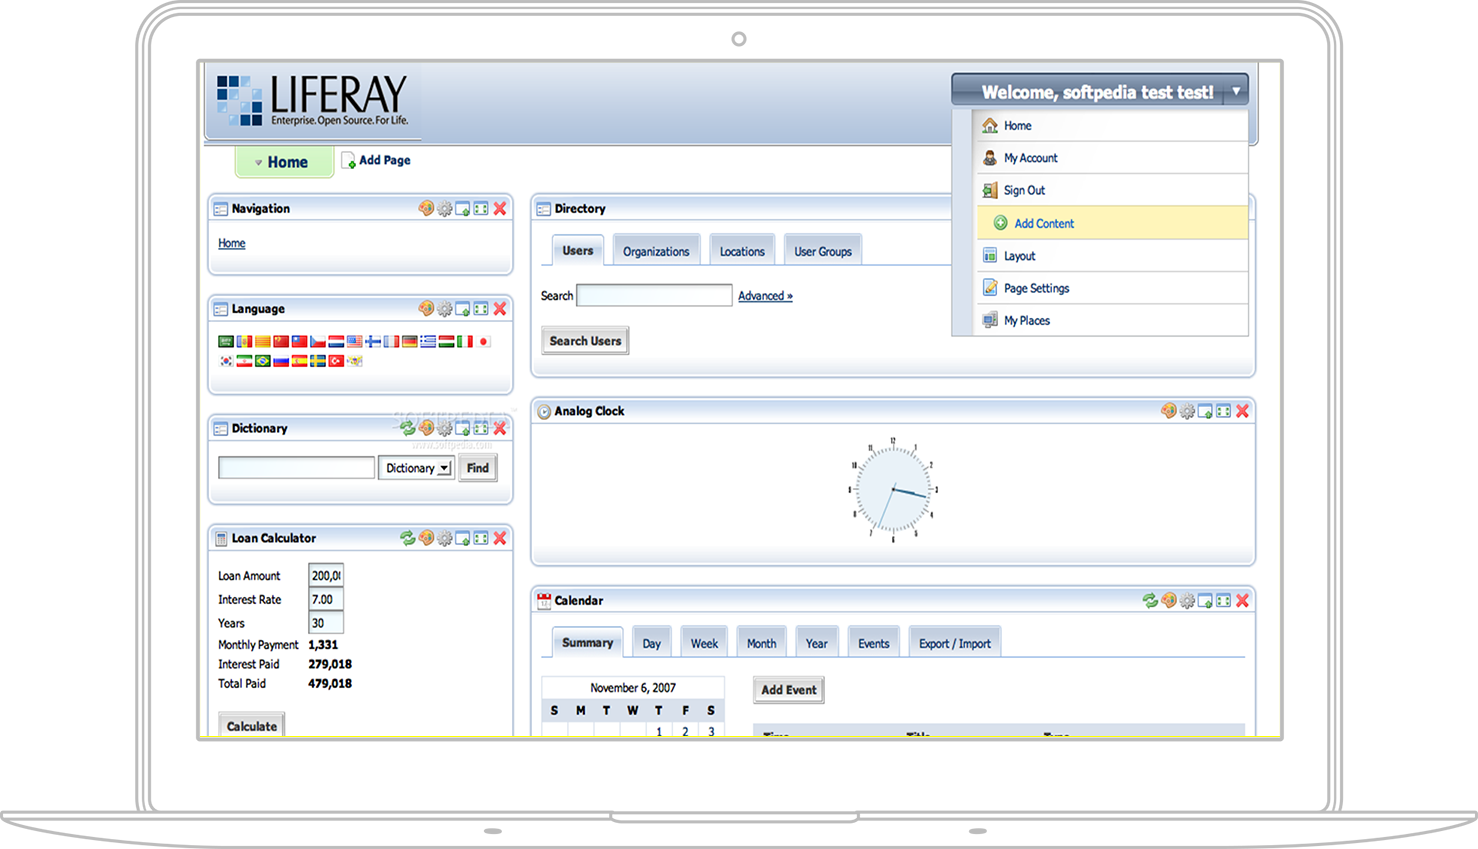 Liferay Dashboard